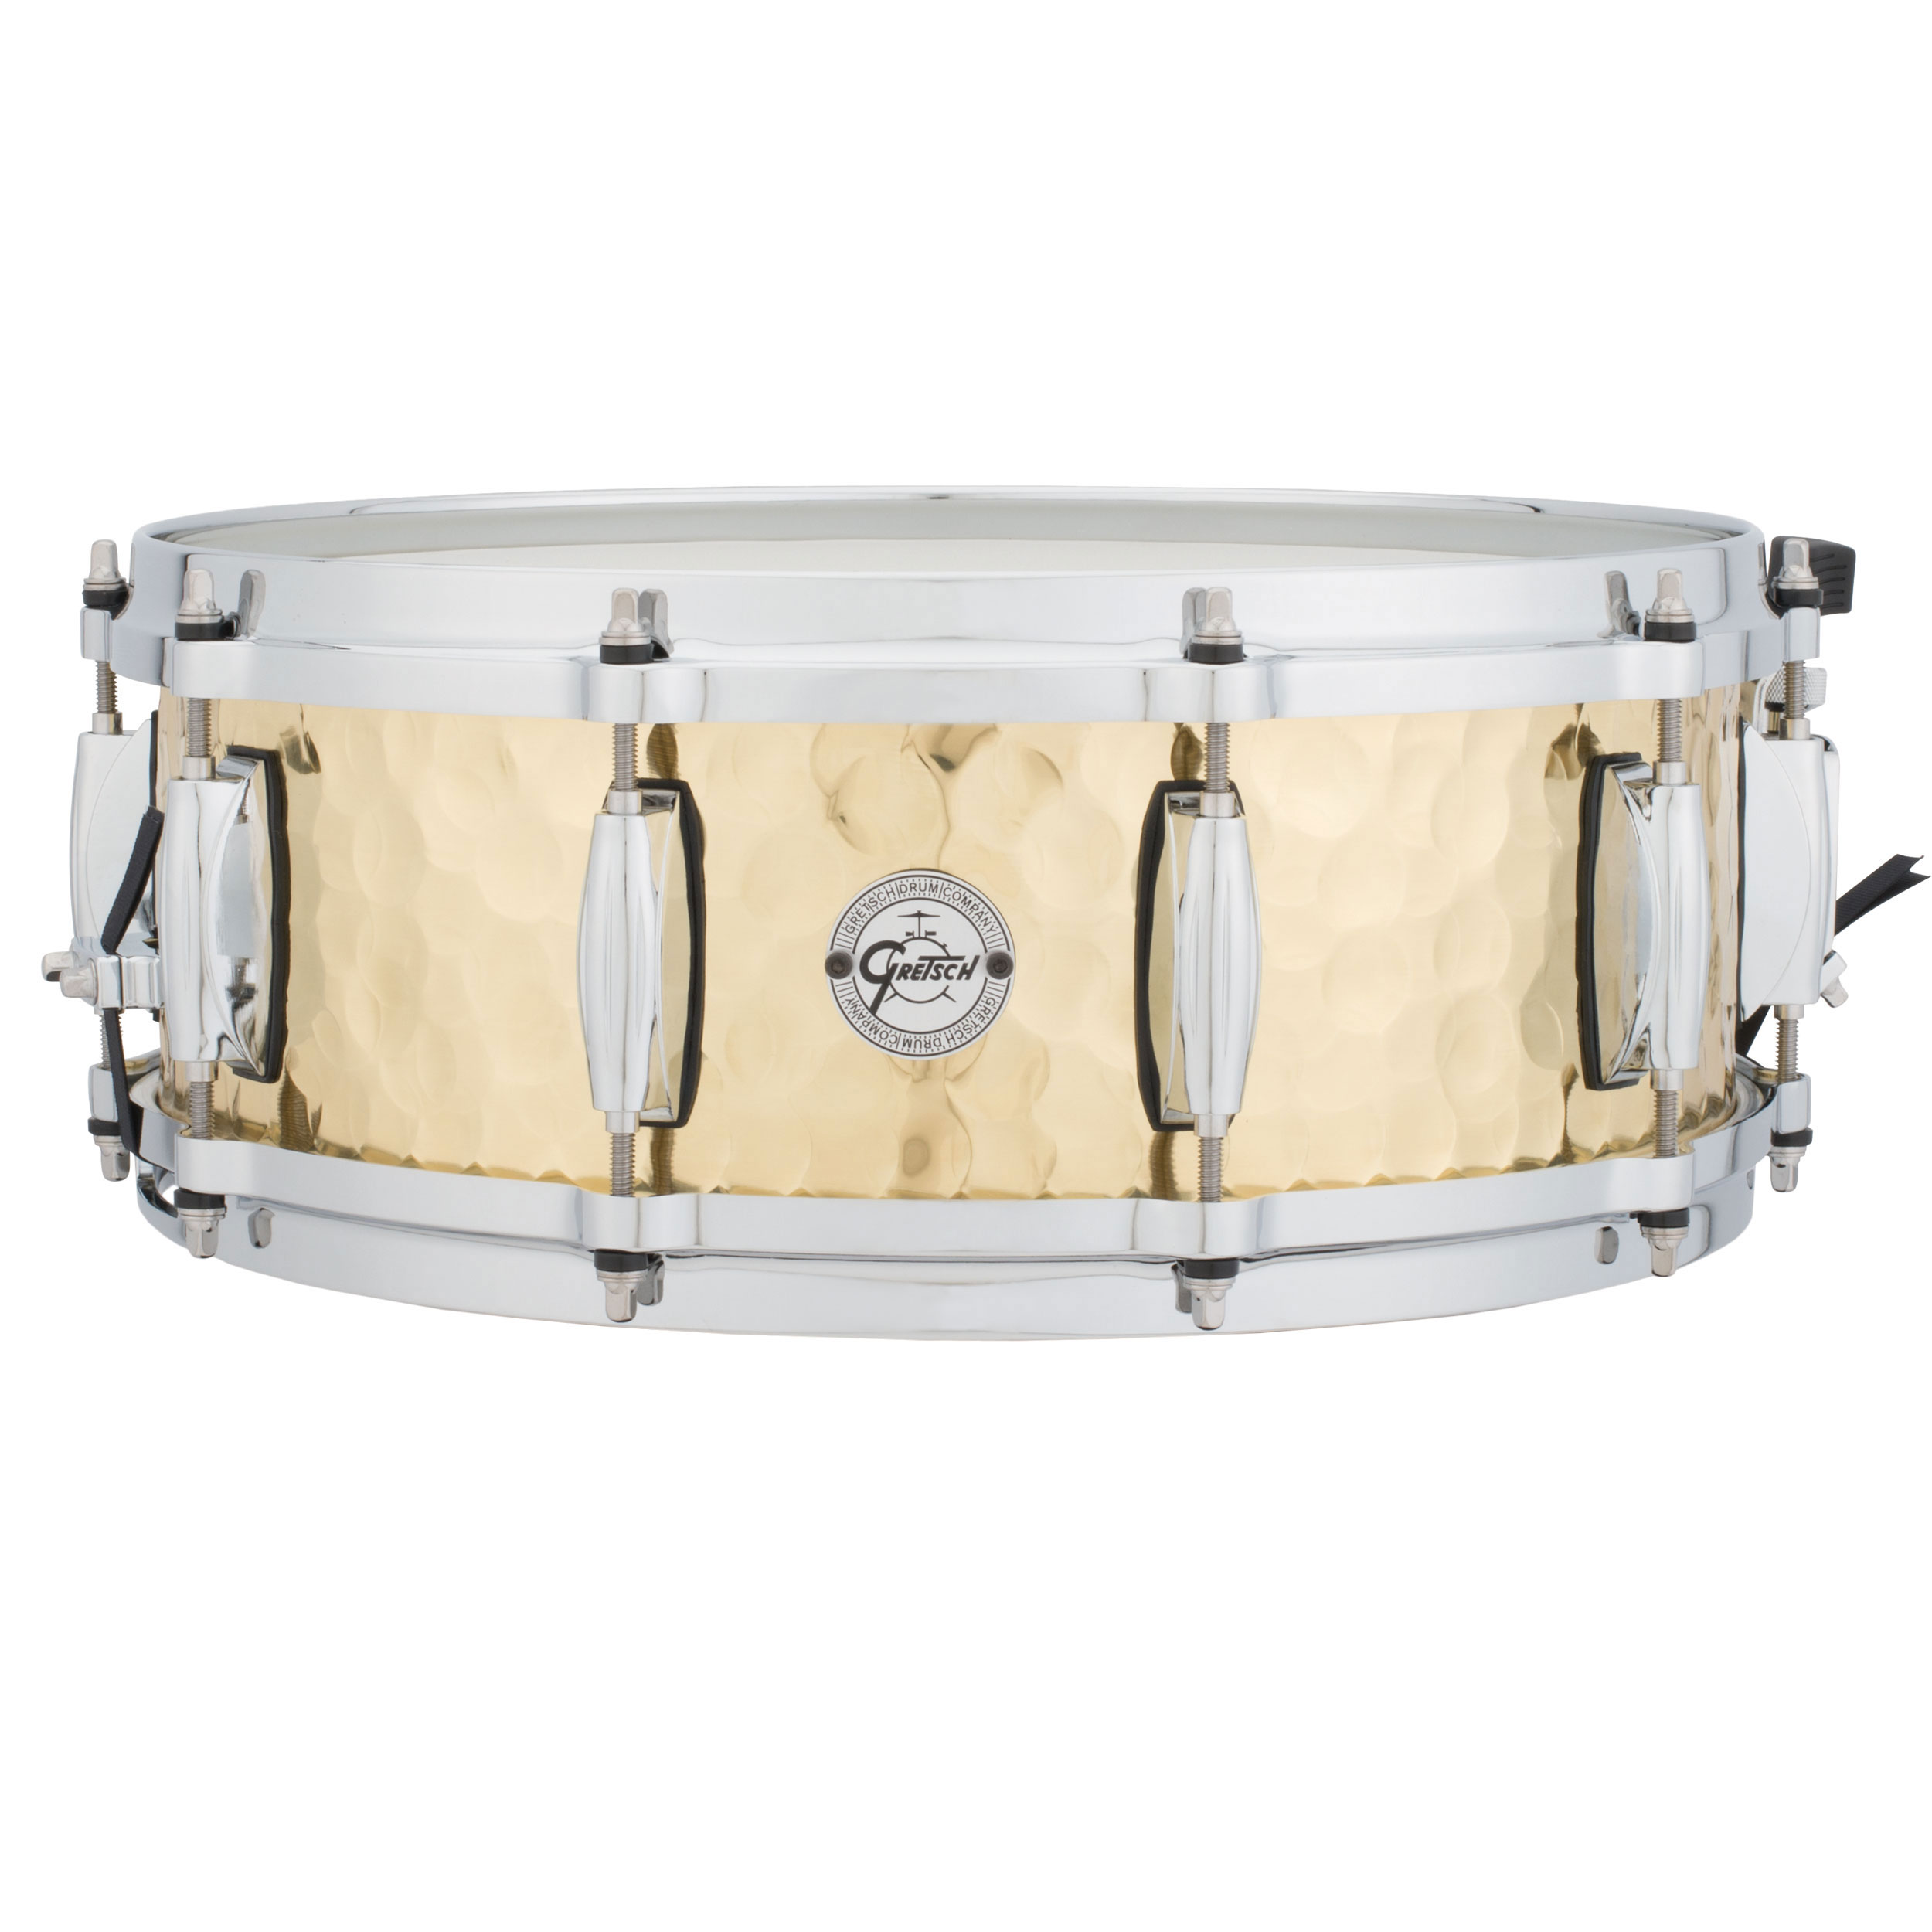 "Gretsch 5"" x 14"" Silver Series Hammered Brass Snare Drum"